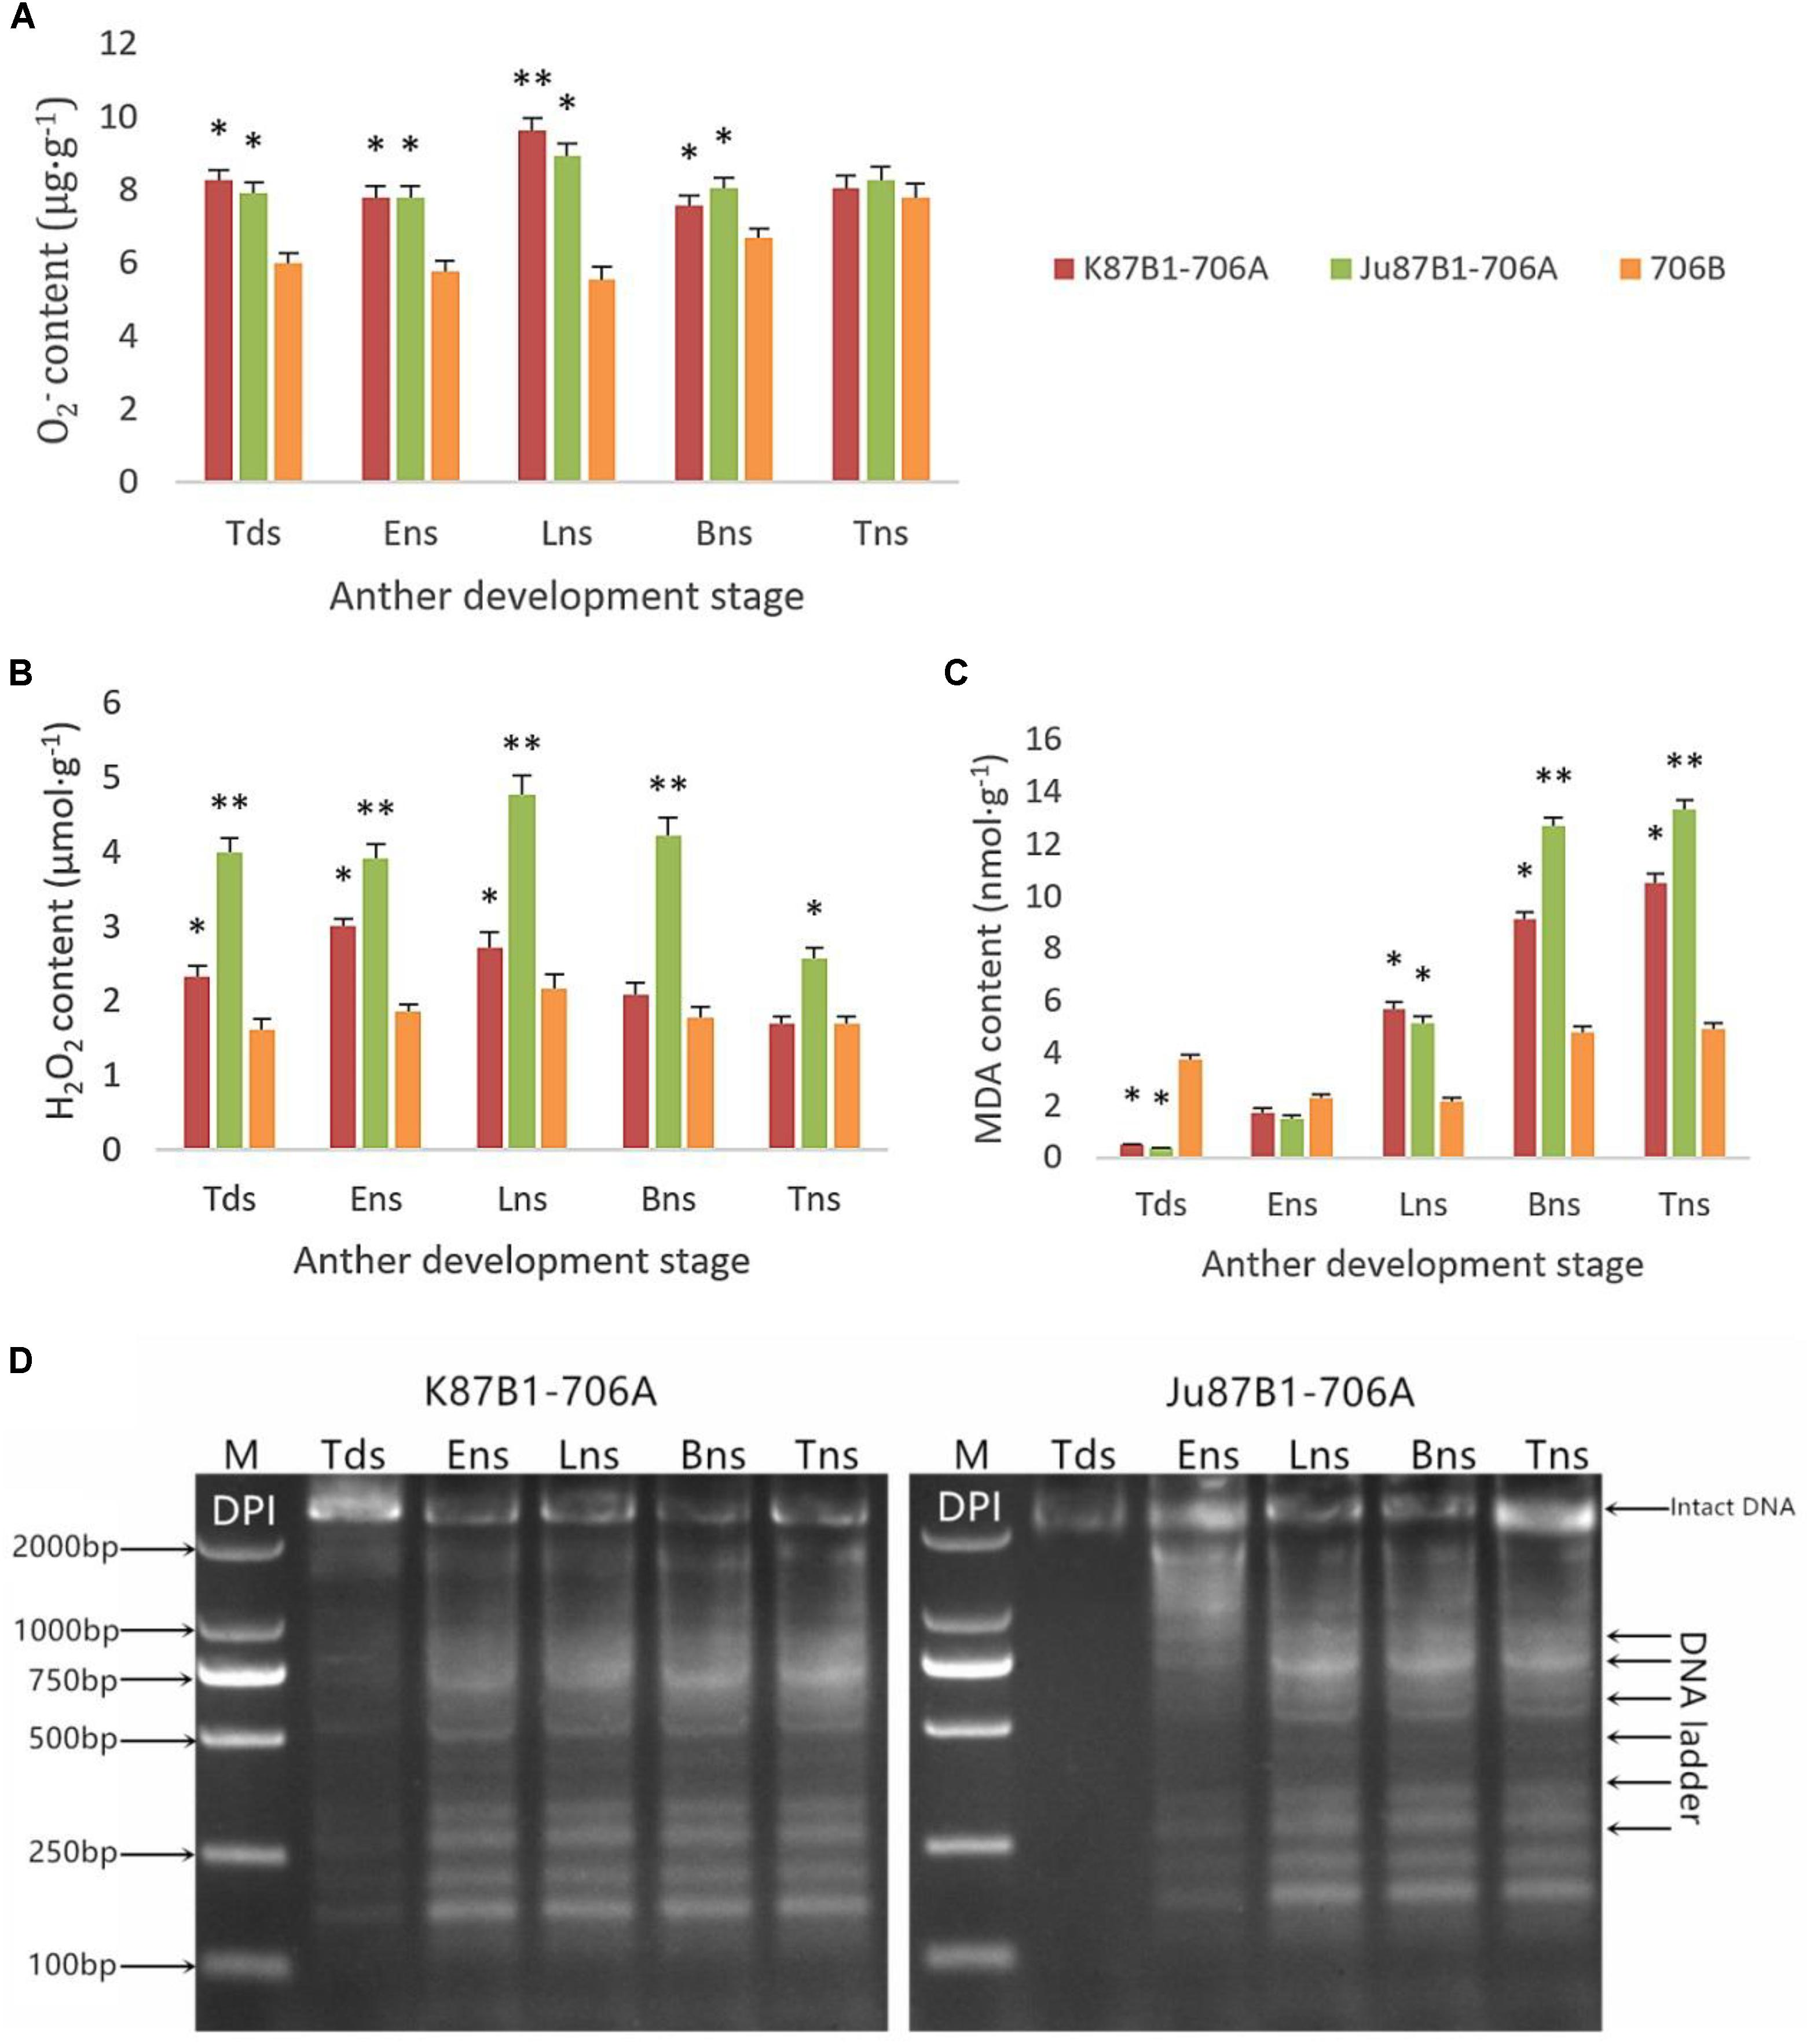 Anther Ladder frontiers   oxidative stress and aberrant programmed cell